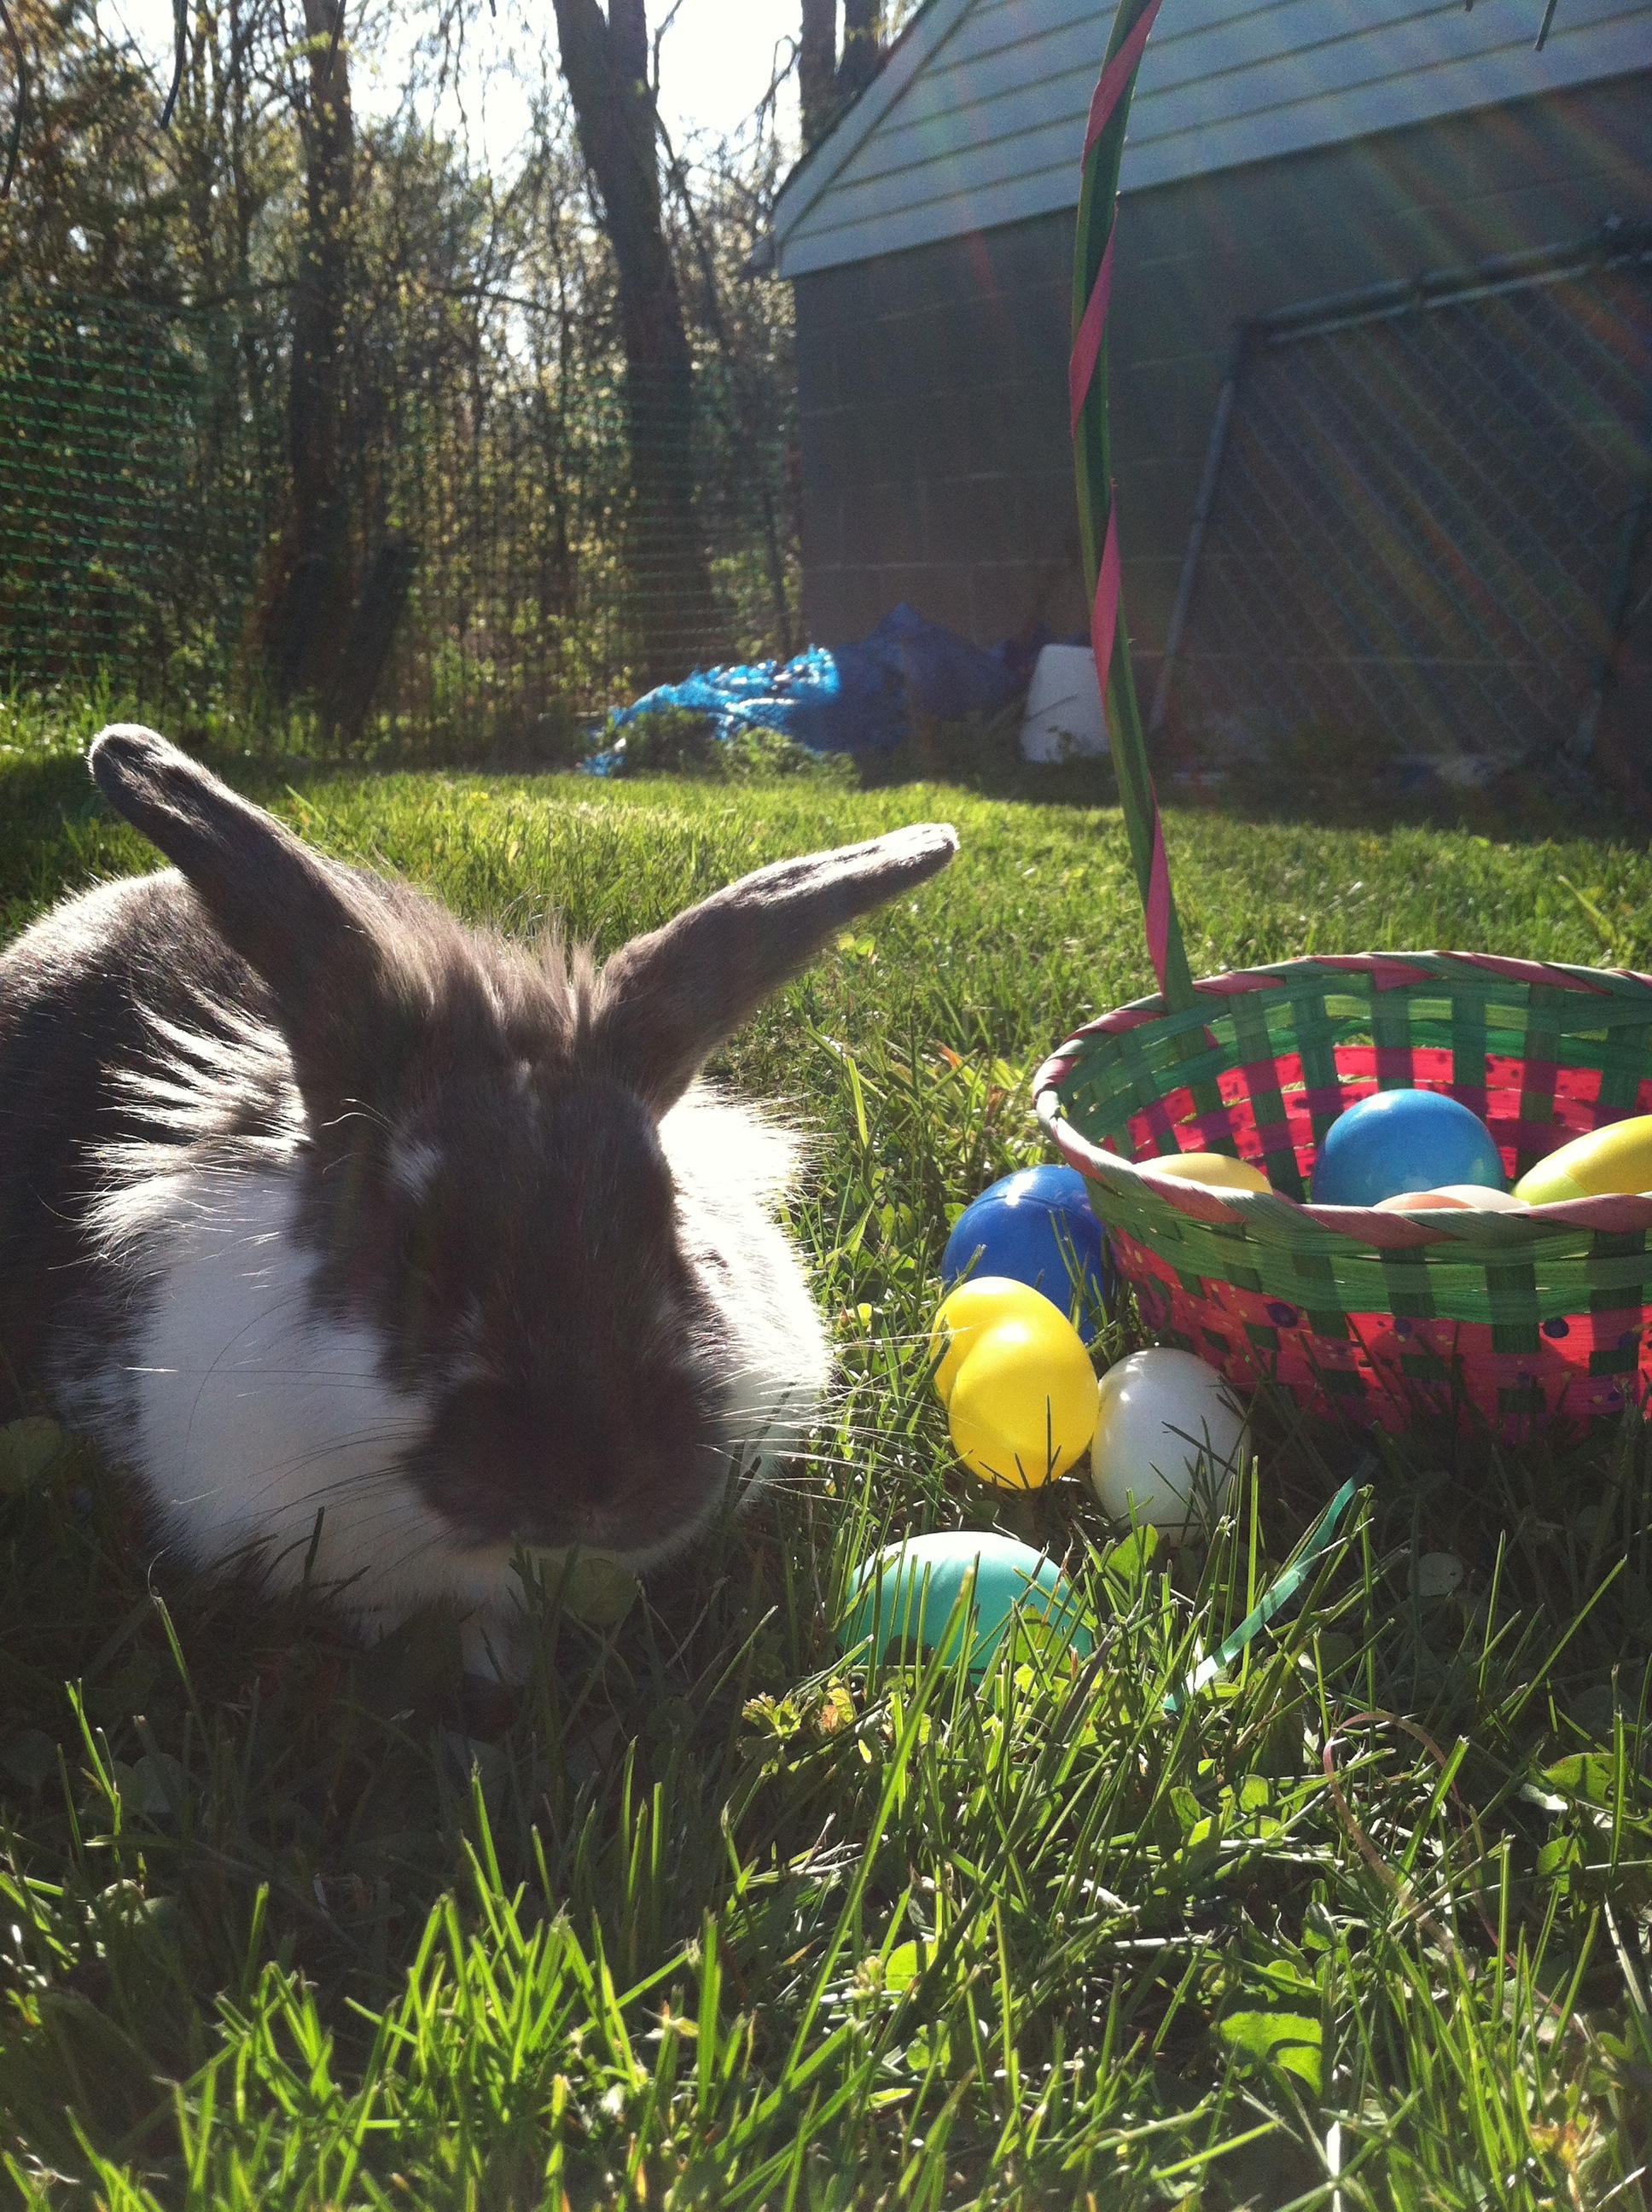 Bunny Is the Winner of the Easter Egg Hunt